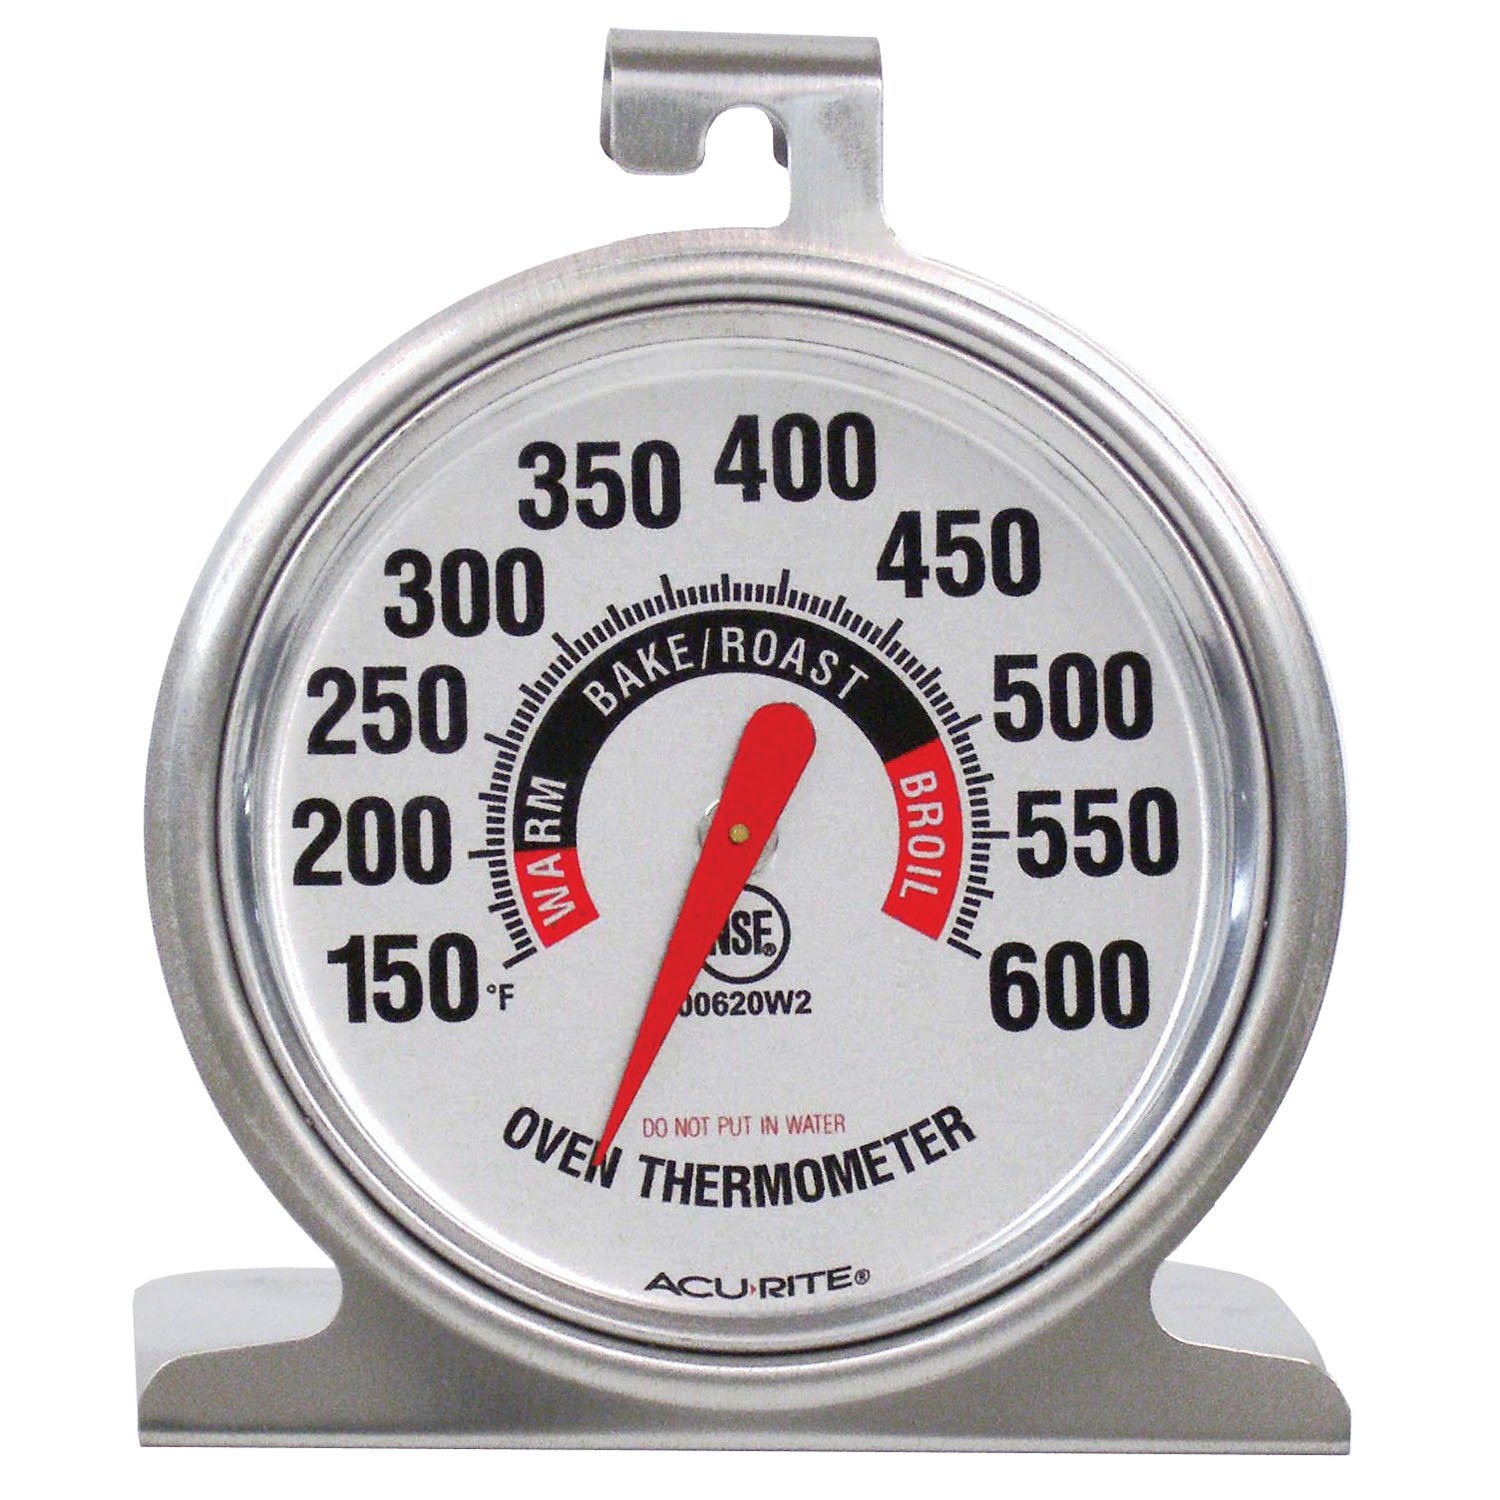 00620A2 Stainless Steel Oven Thermometer..., By AcuRite Ship from US by